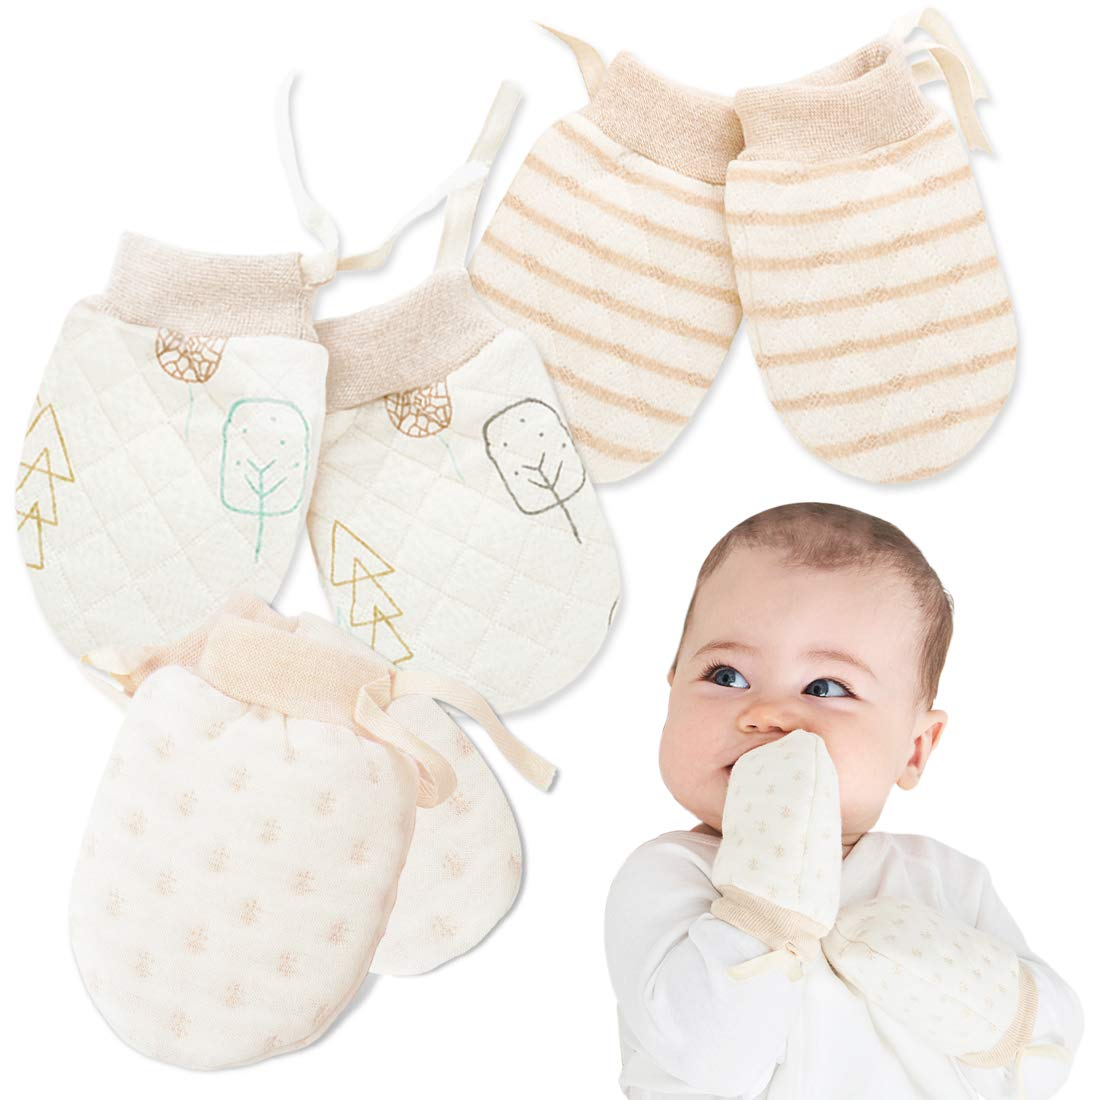 M, 3 Pairs Kalevel Newborn Baby Mittens Boy Girl Anti Scratch Adjustable Thick Mittens with Drawstring 0-2 Years